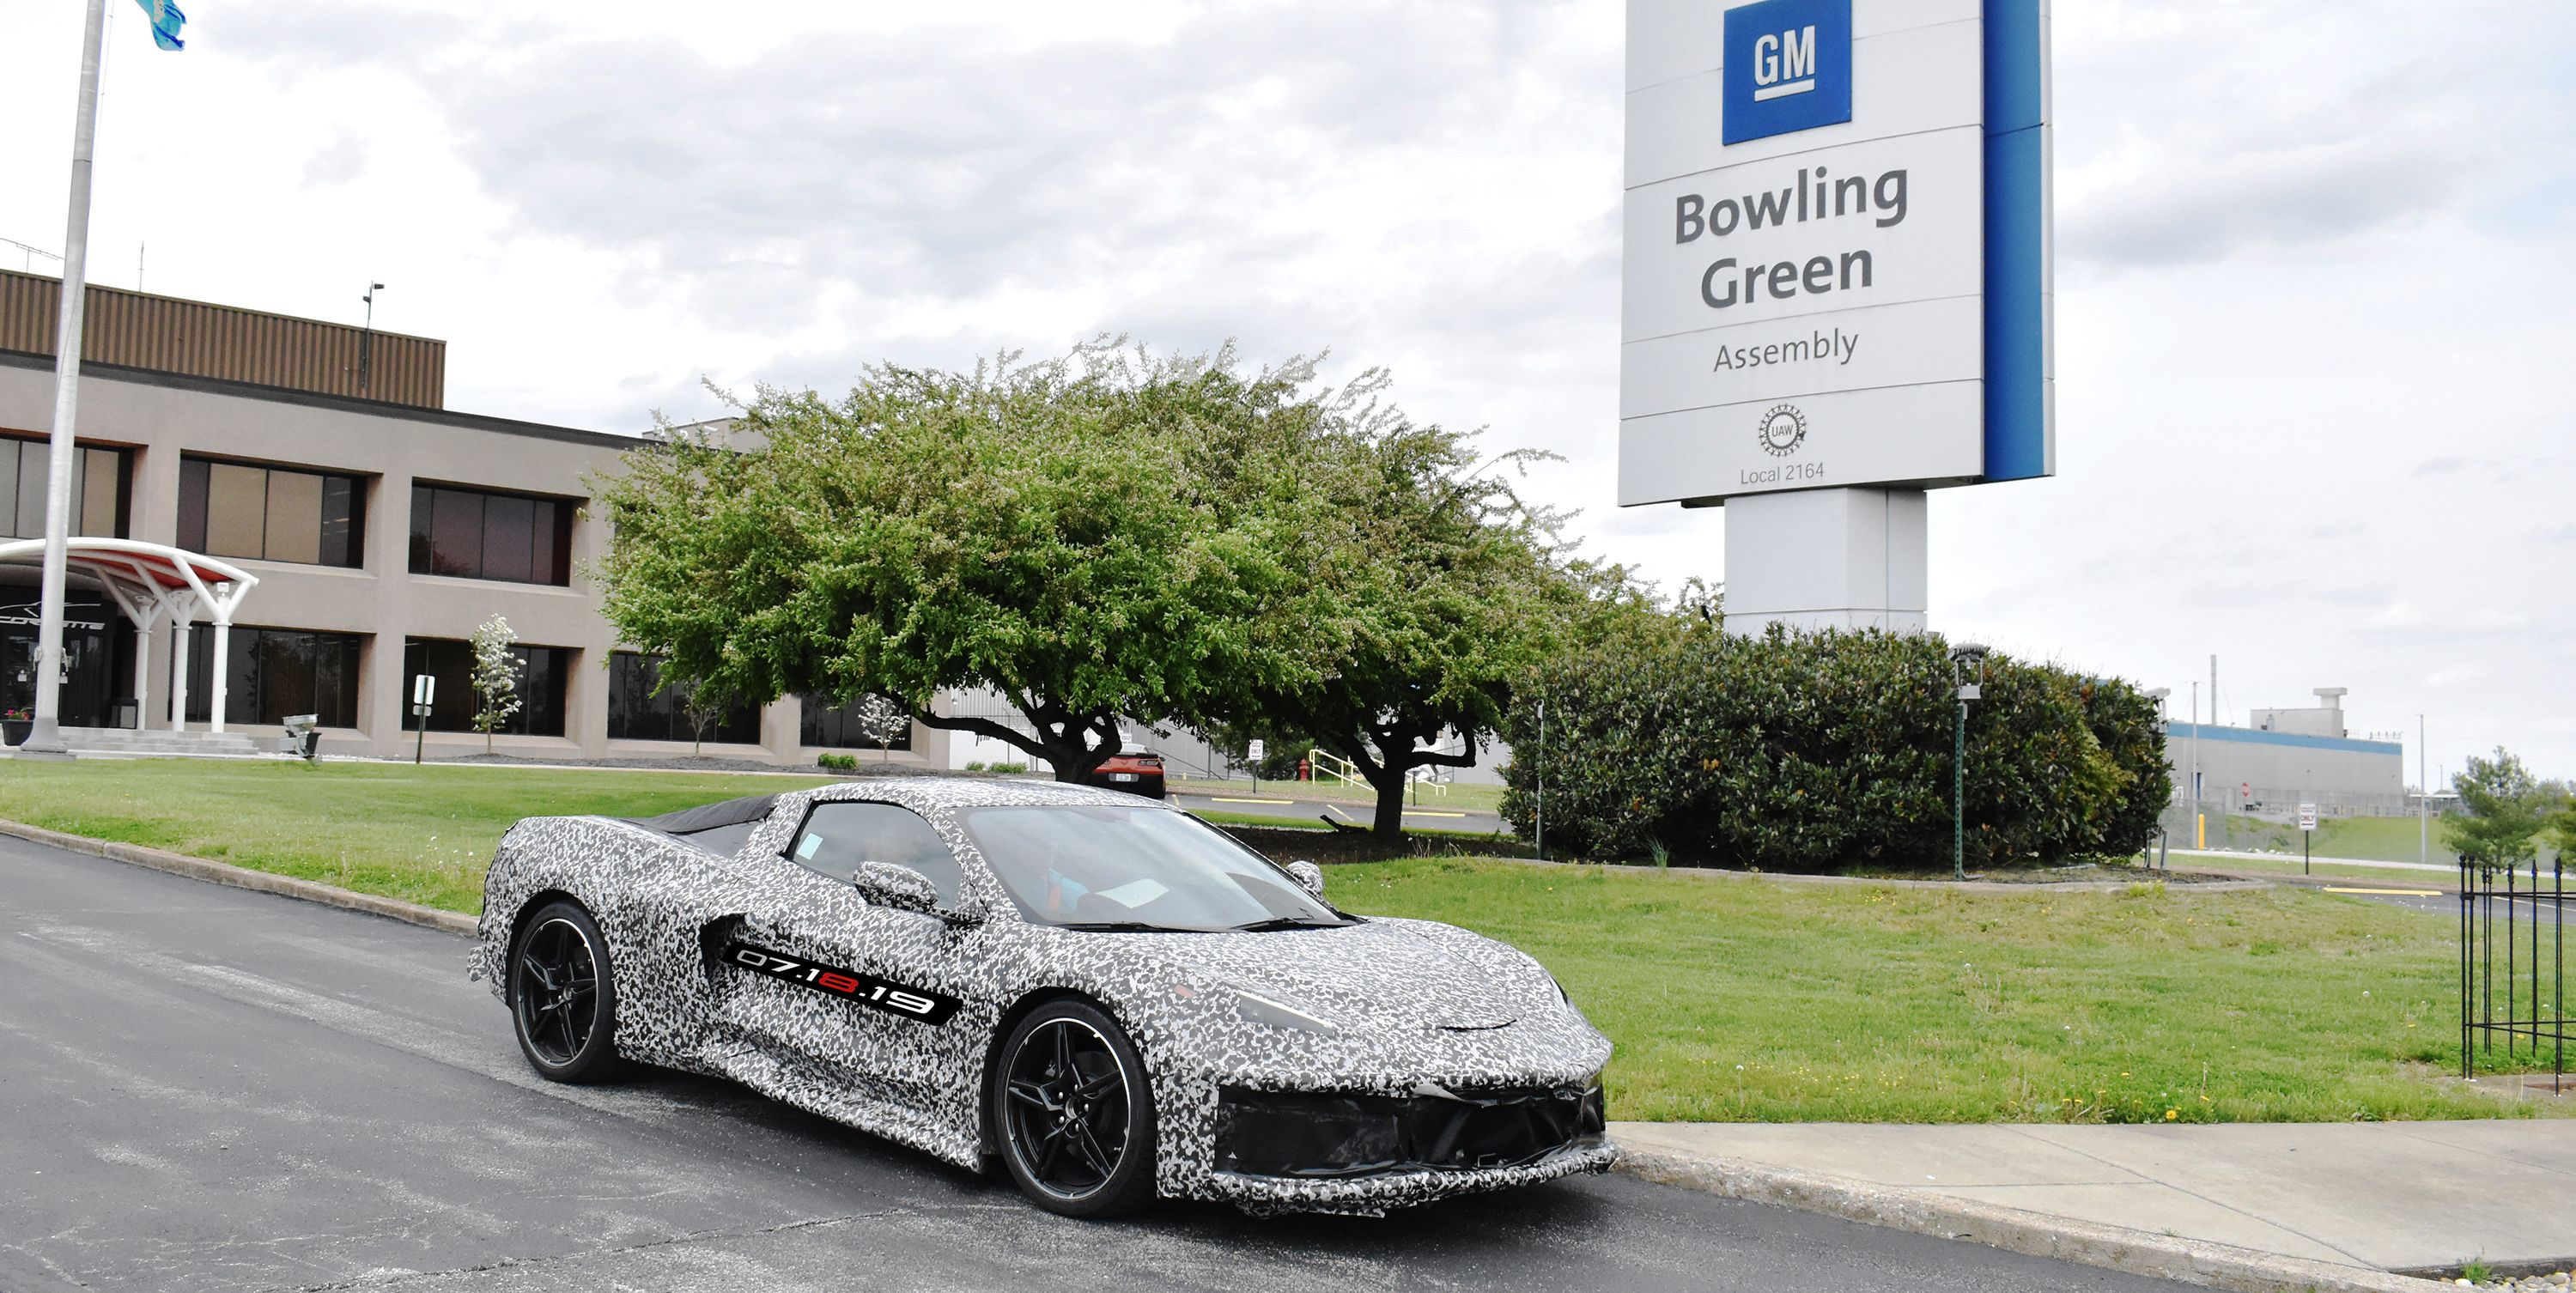 Chevrolet Prepares for C8 Corvette Production by Adding Workers at Bowling Green Factory